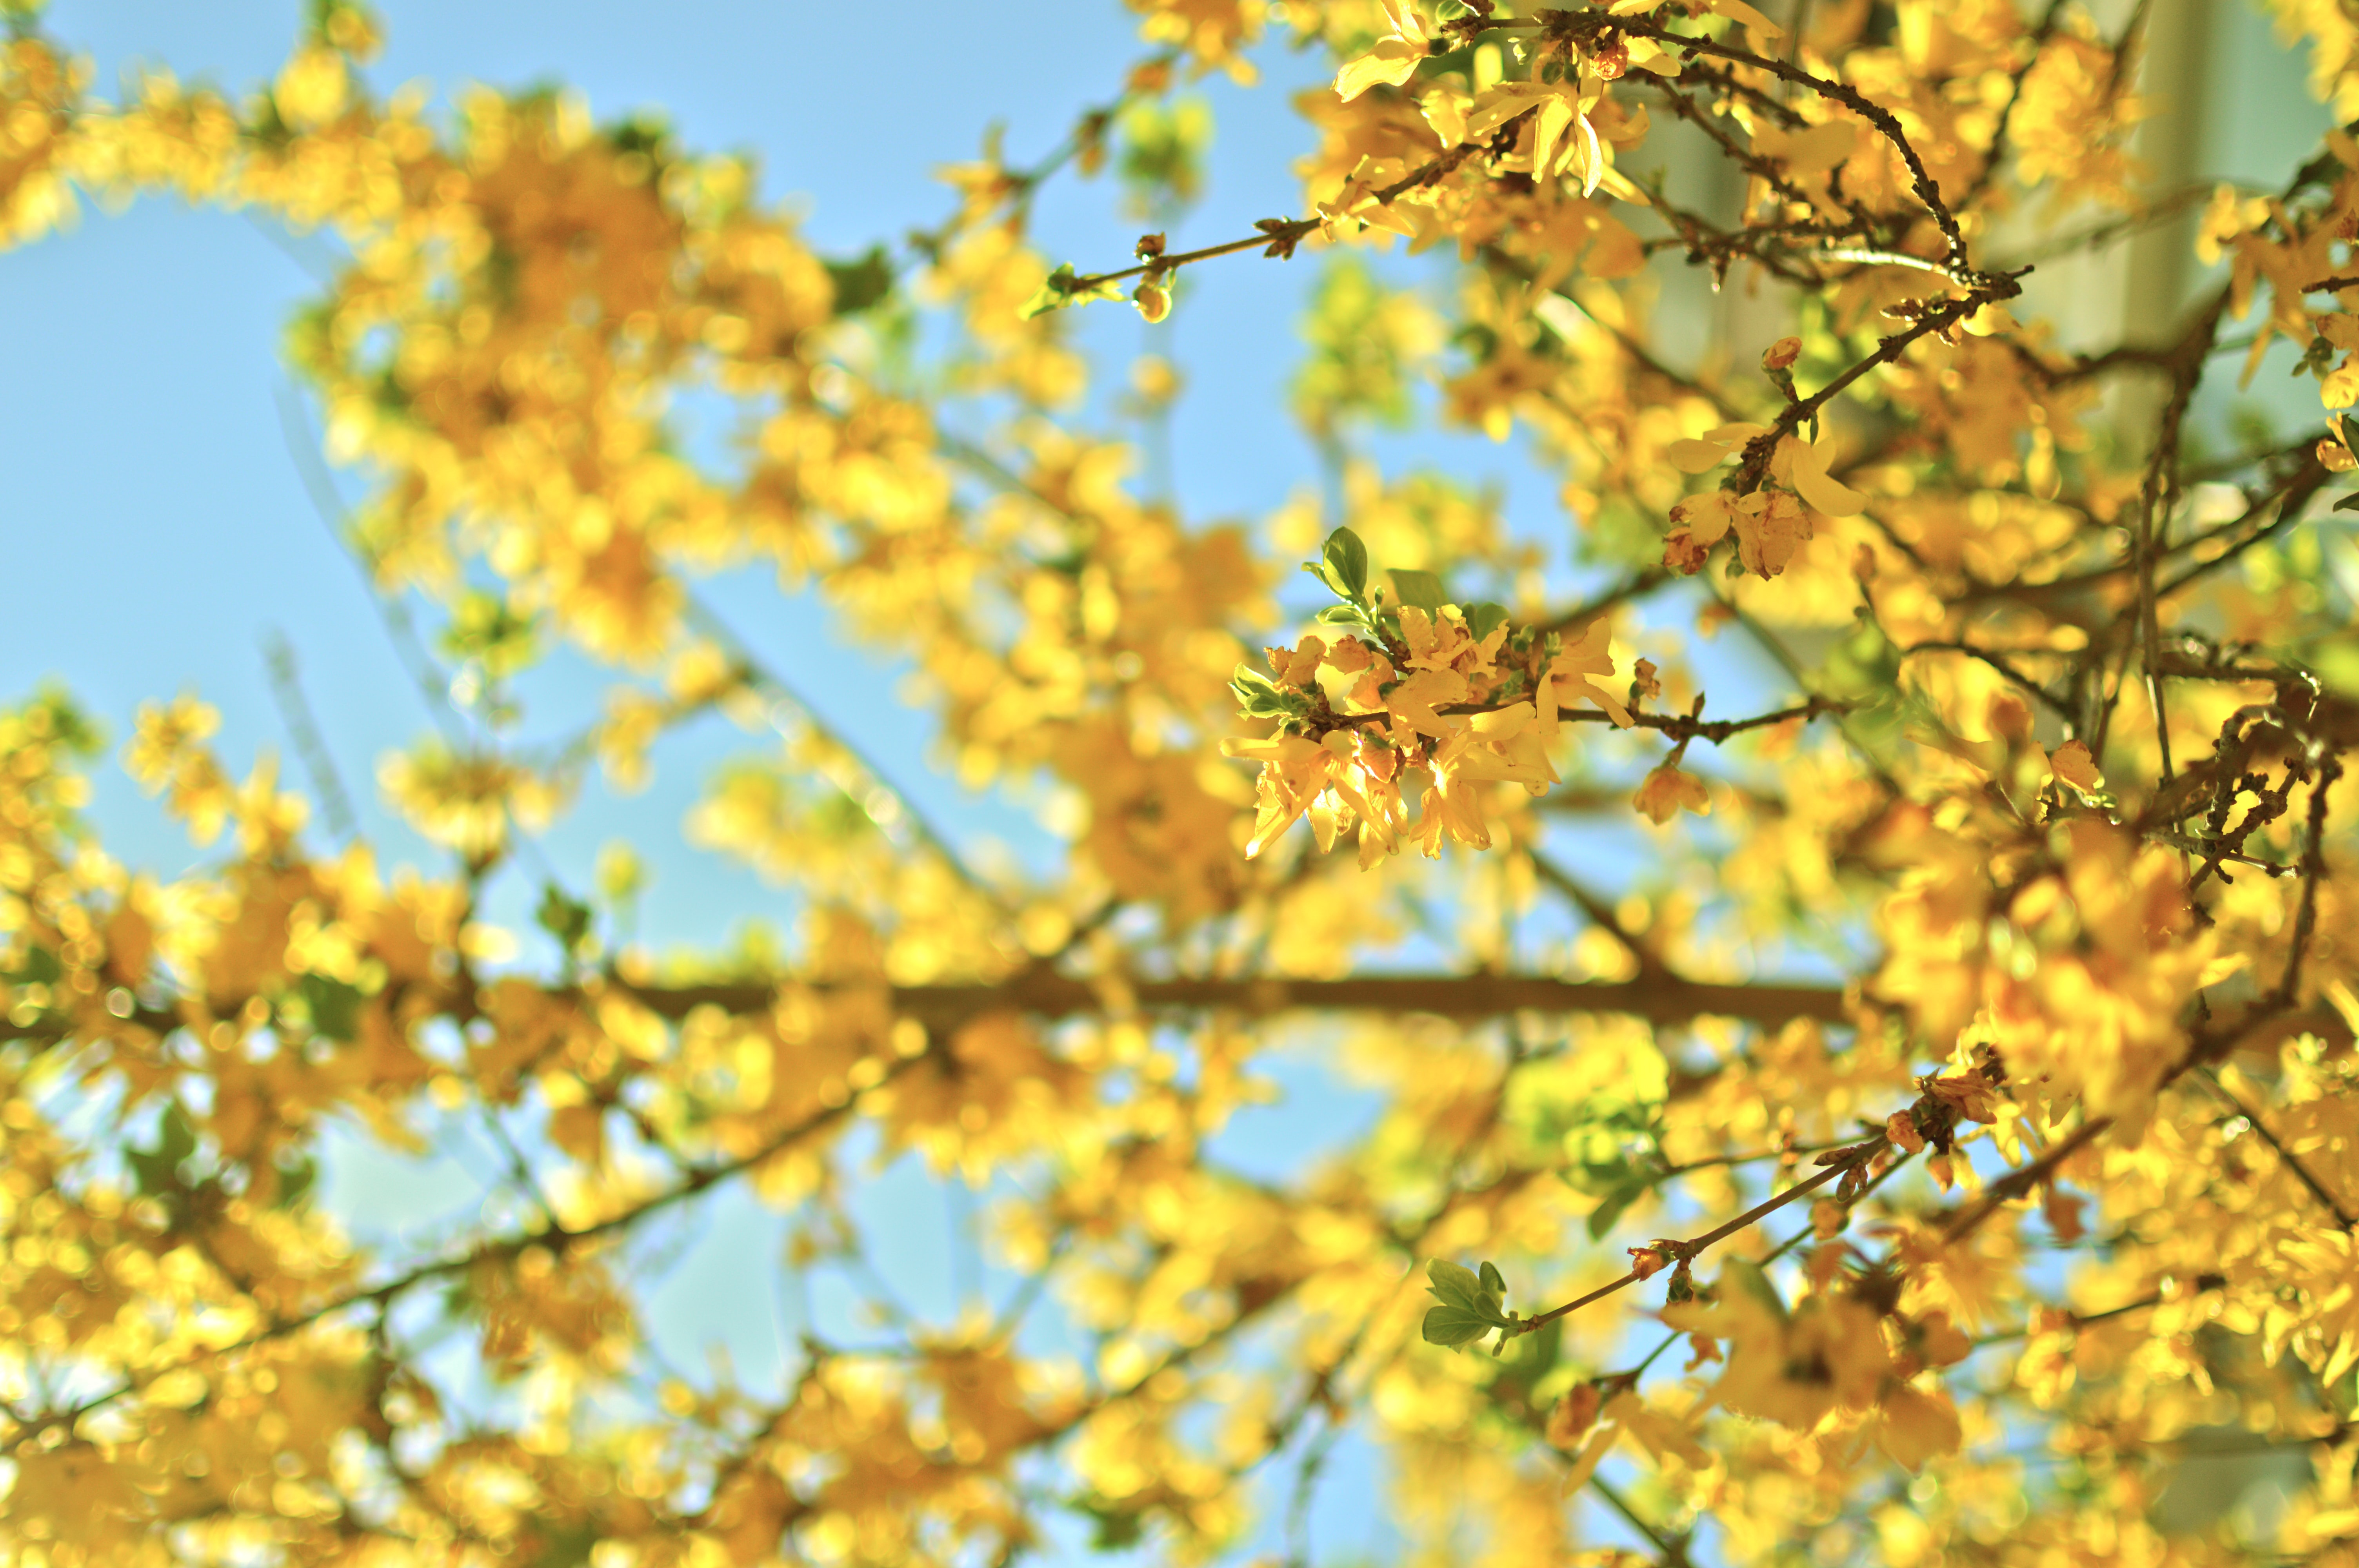 A close-up of branches covered with light yellow flowers in blossom